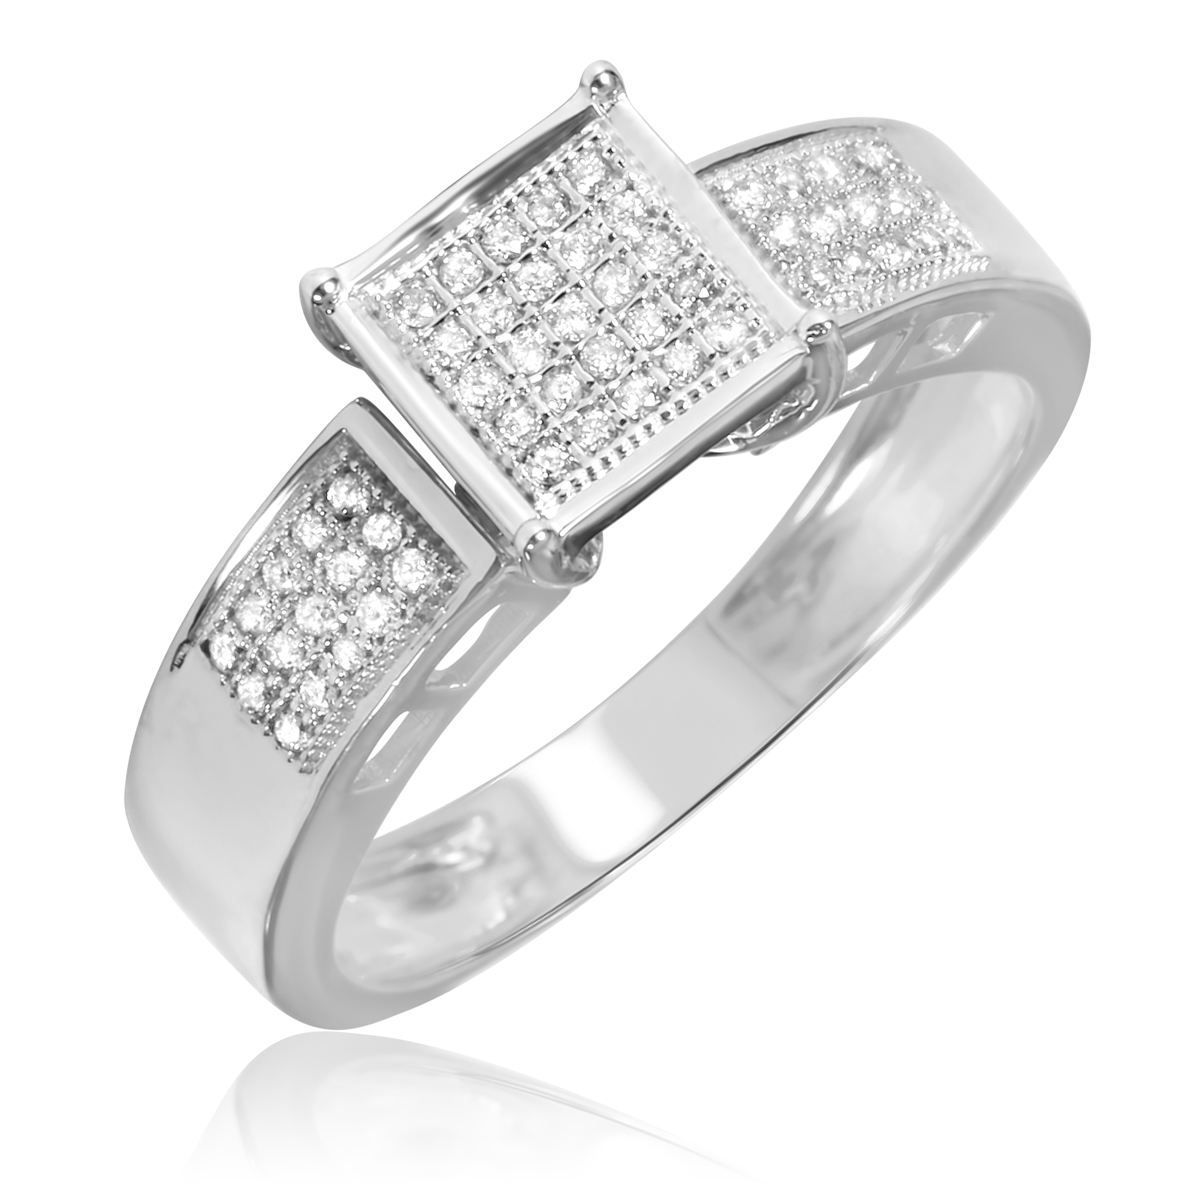 1 4 carat bridal wedding ring set 10k white gold